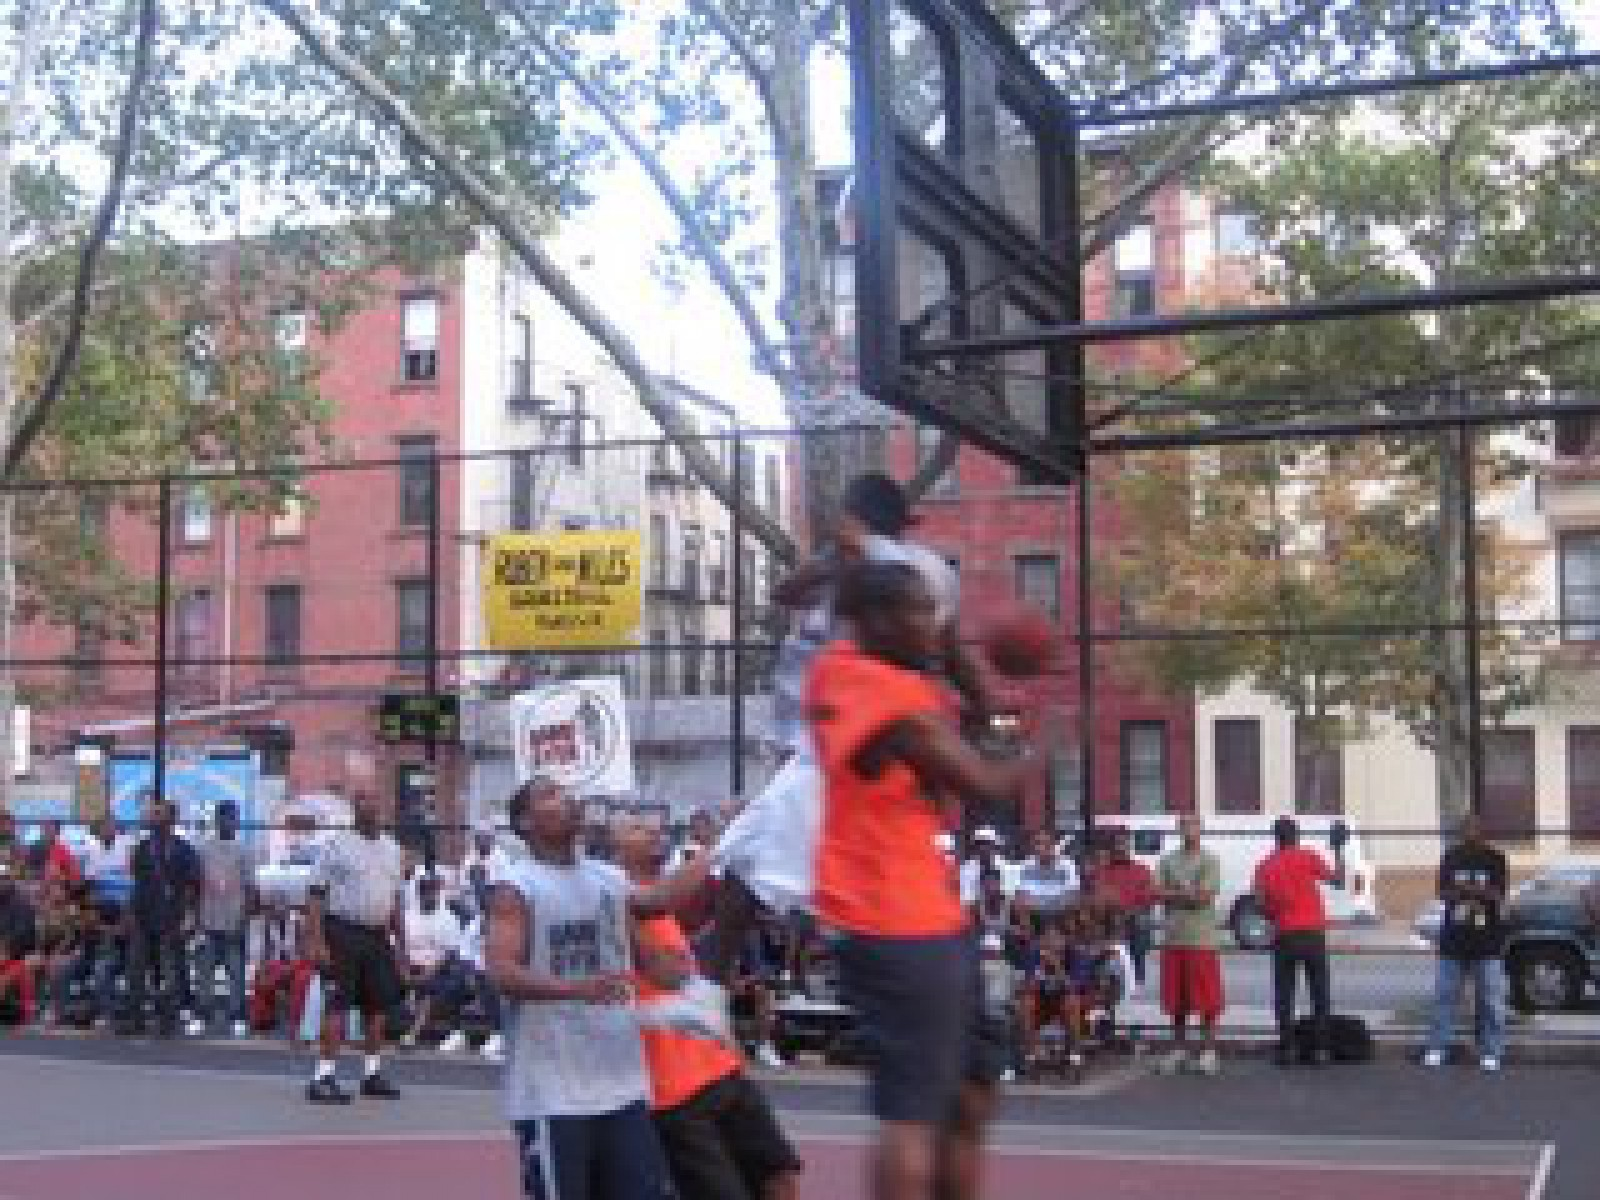 Raymond Bush Playground, Brooklyn, NY, United States